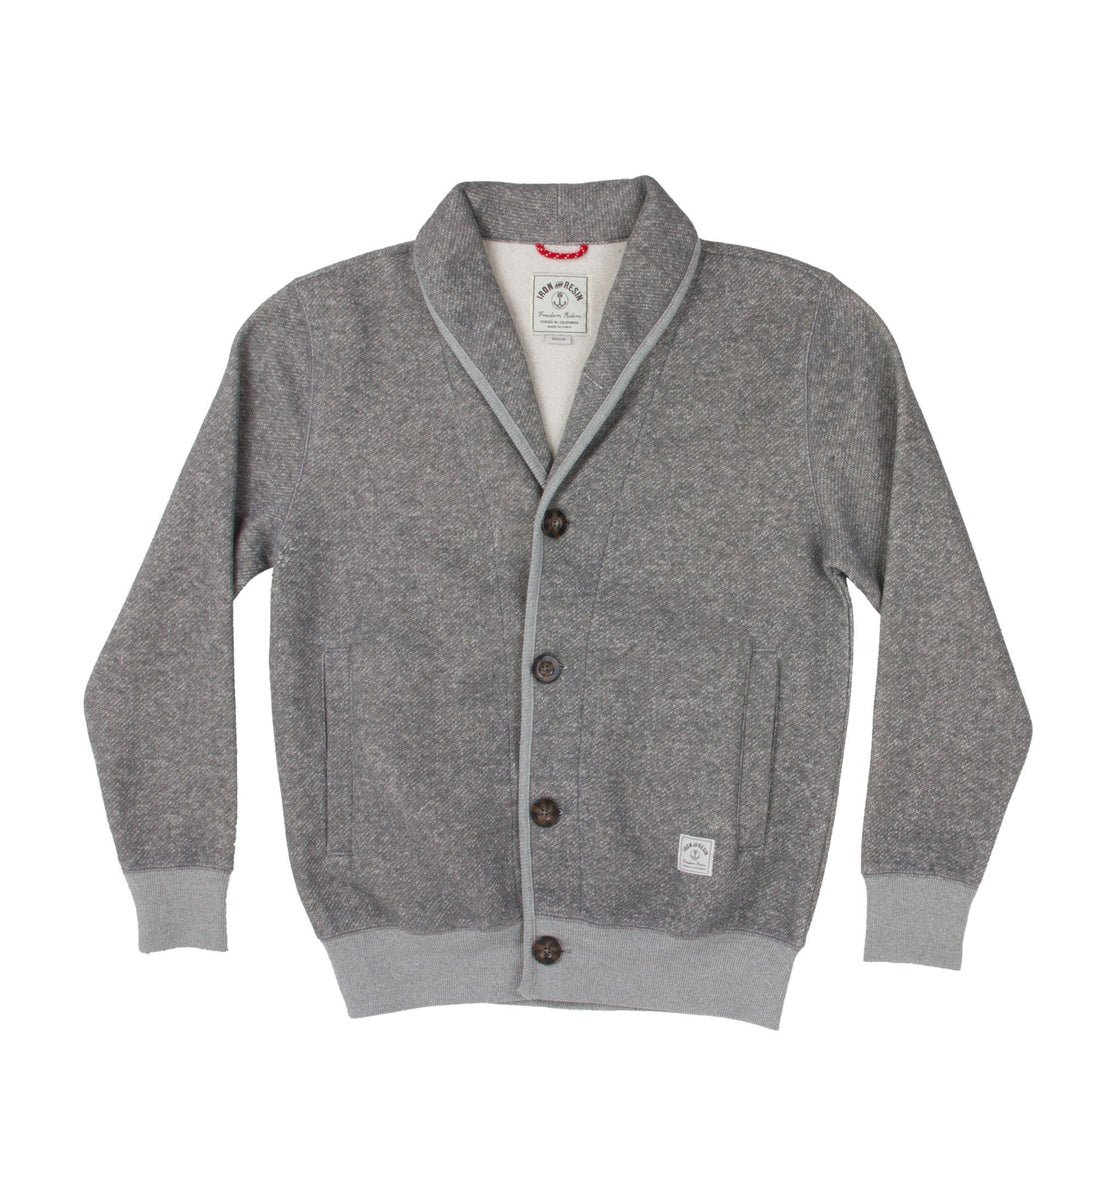 Ashford Cardigan - Outerwear - Iron and Resin